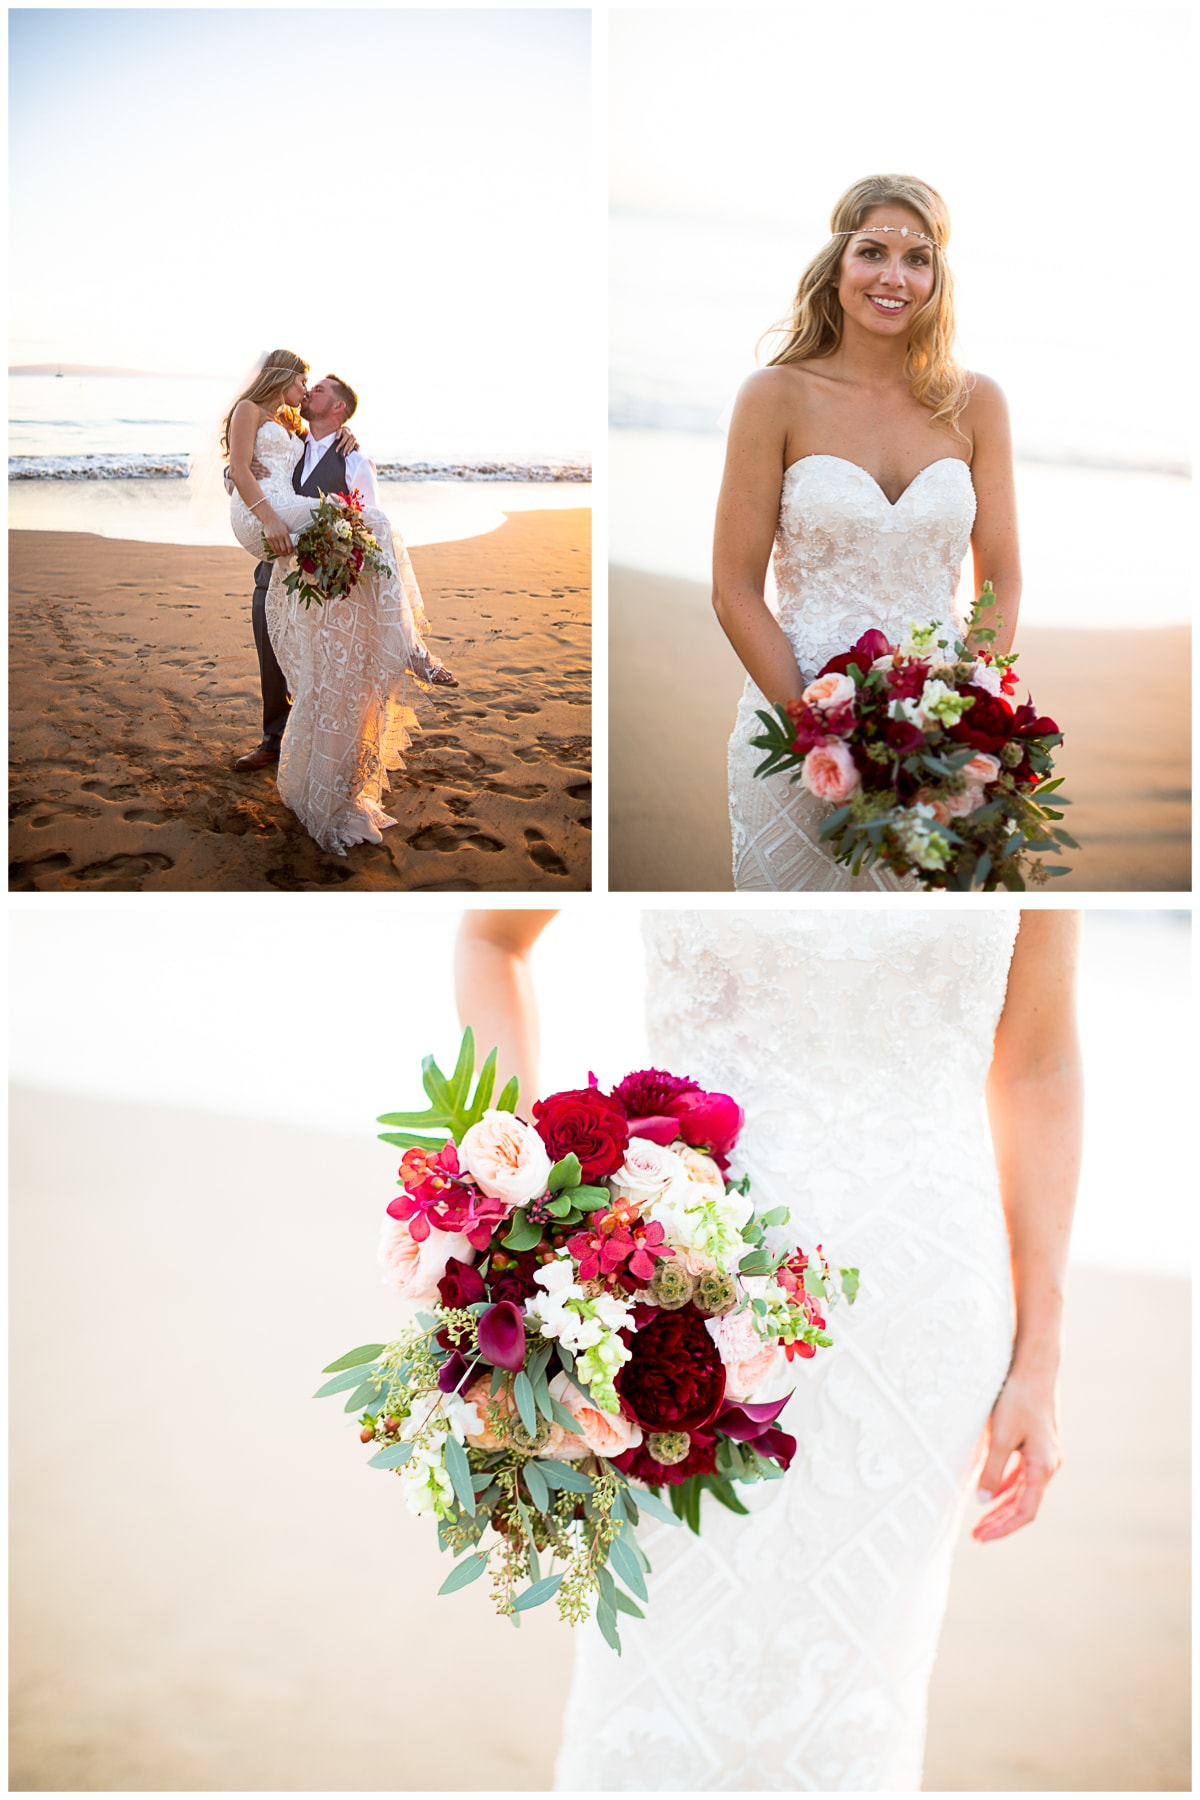 Beach Bride Sugar Beach Maui Wedding #Sugarbeachwedding #mauiwedding #hawaiiweddings